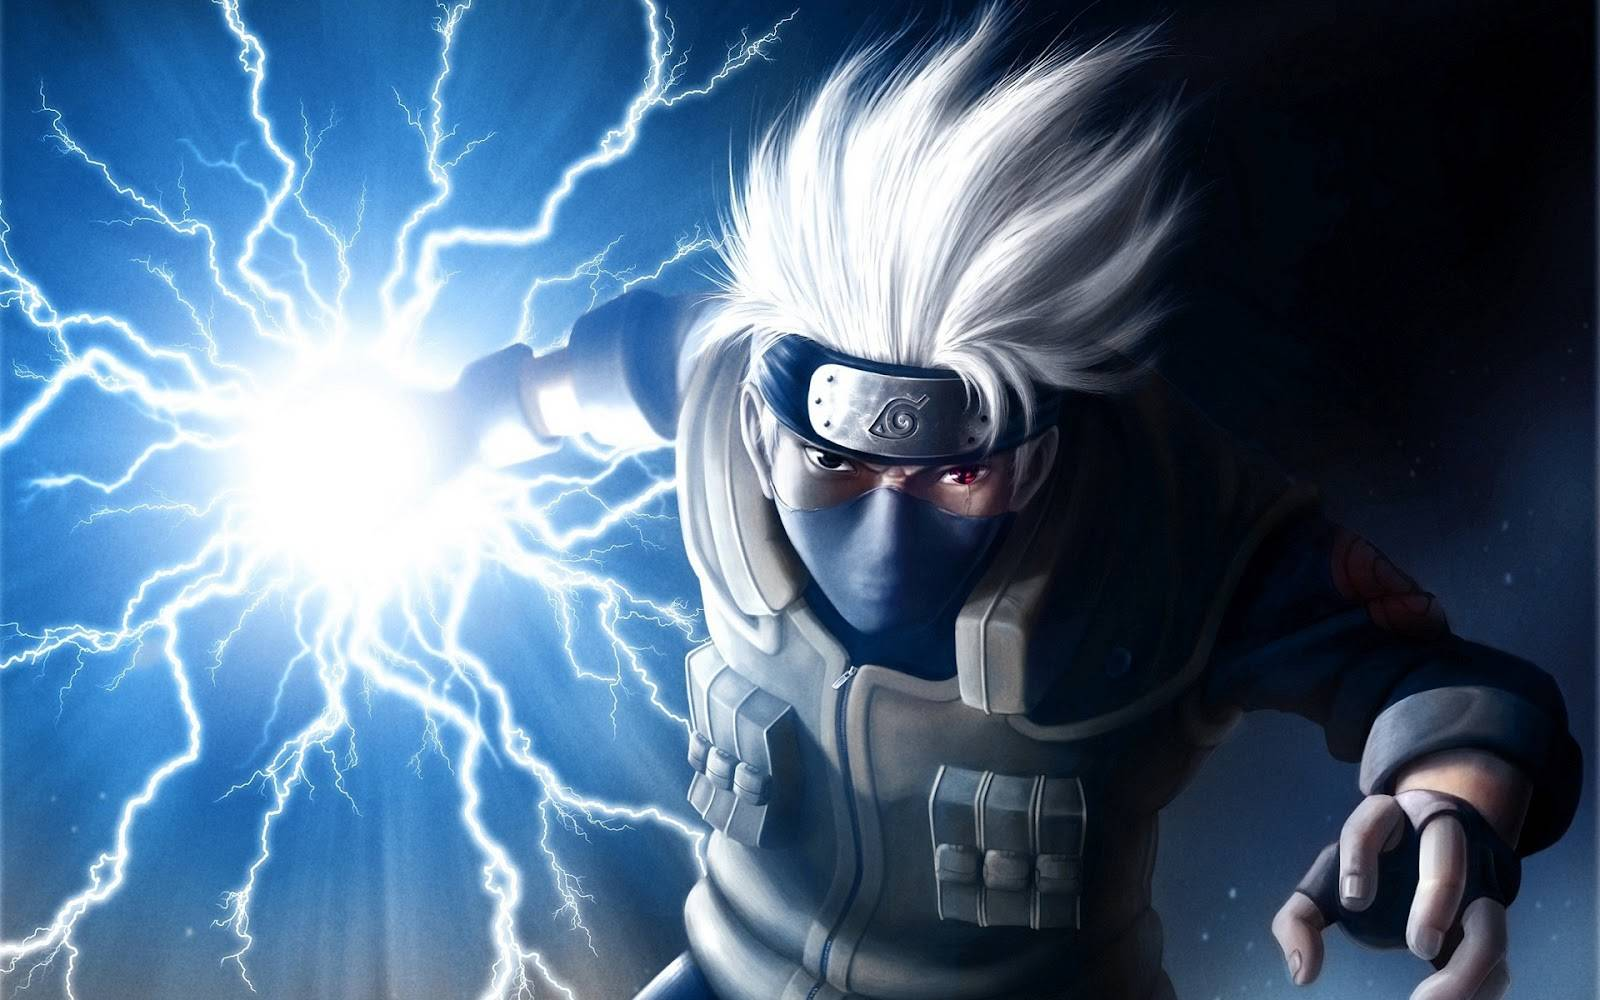 Naruto Pc Wallpapers Top Free Naruto Pc Backgrounds